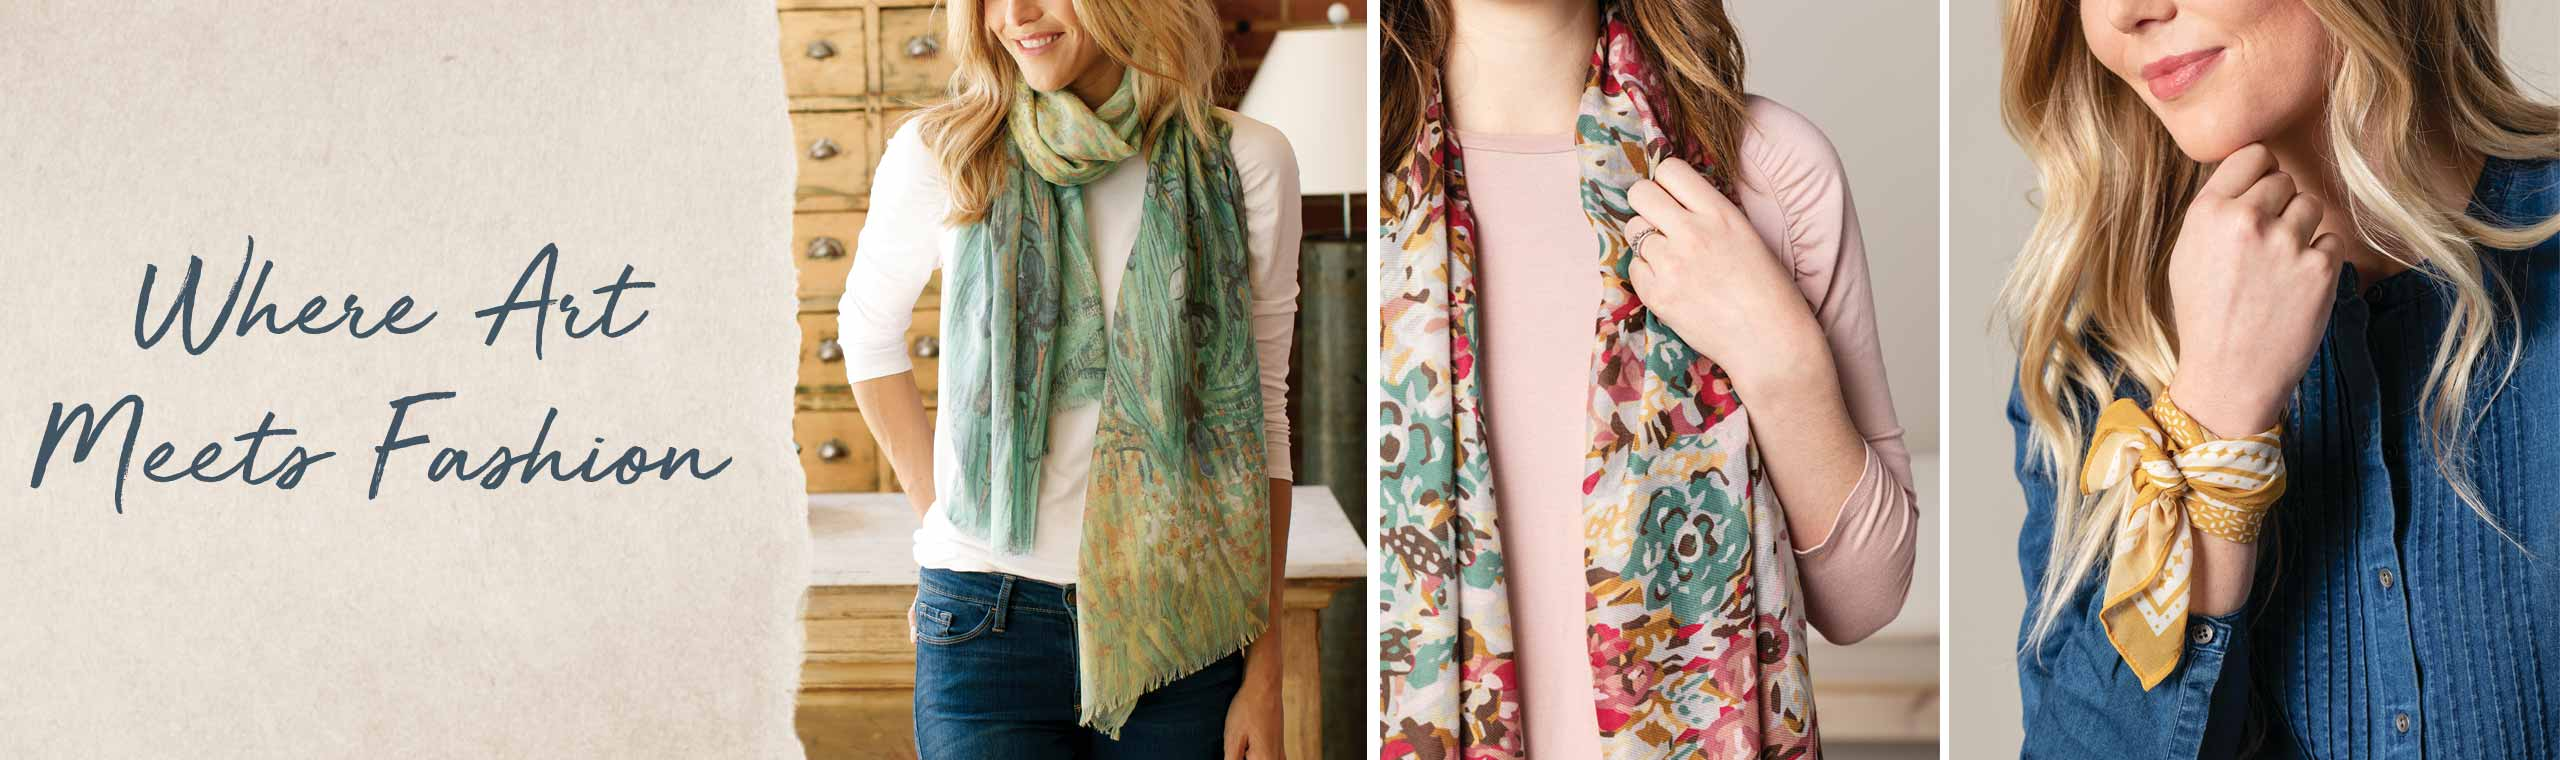 Where Art Meets Fashion, women wearing beautifully-printed colorful scarves around neck and wrist